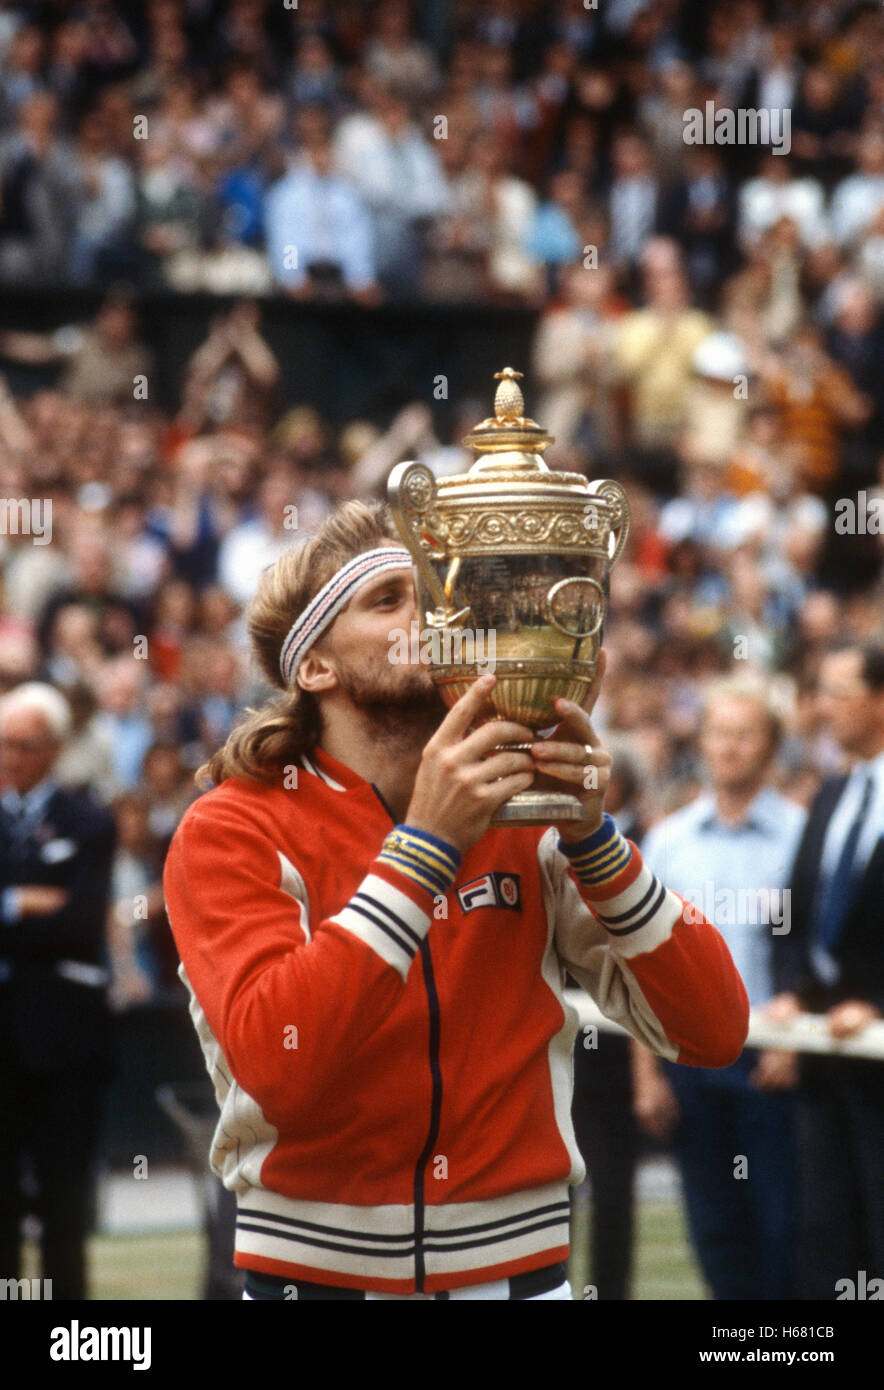 Bjorn Borg kisses his fifth Wimbledon trophy after defeating John McEnroe in the 1980 final. - Stock Image